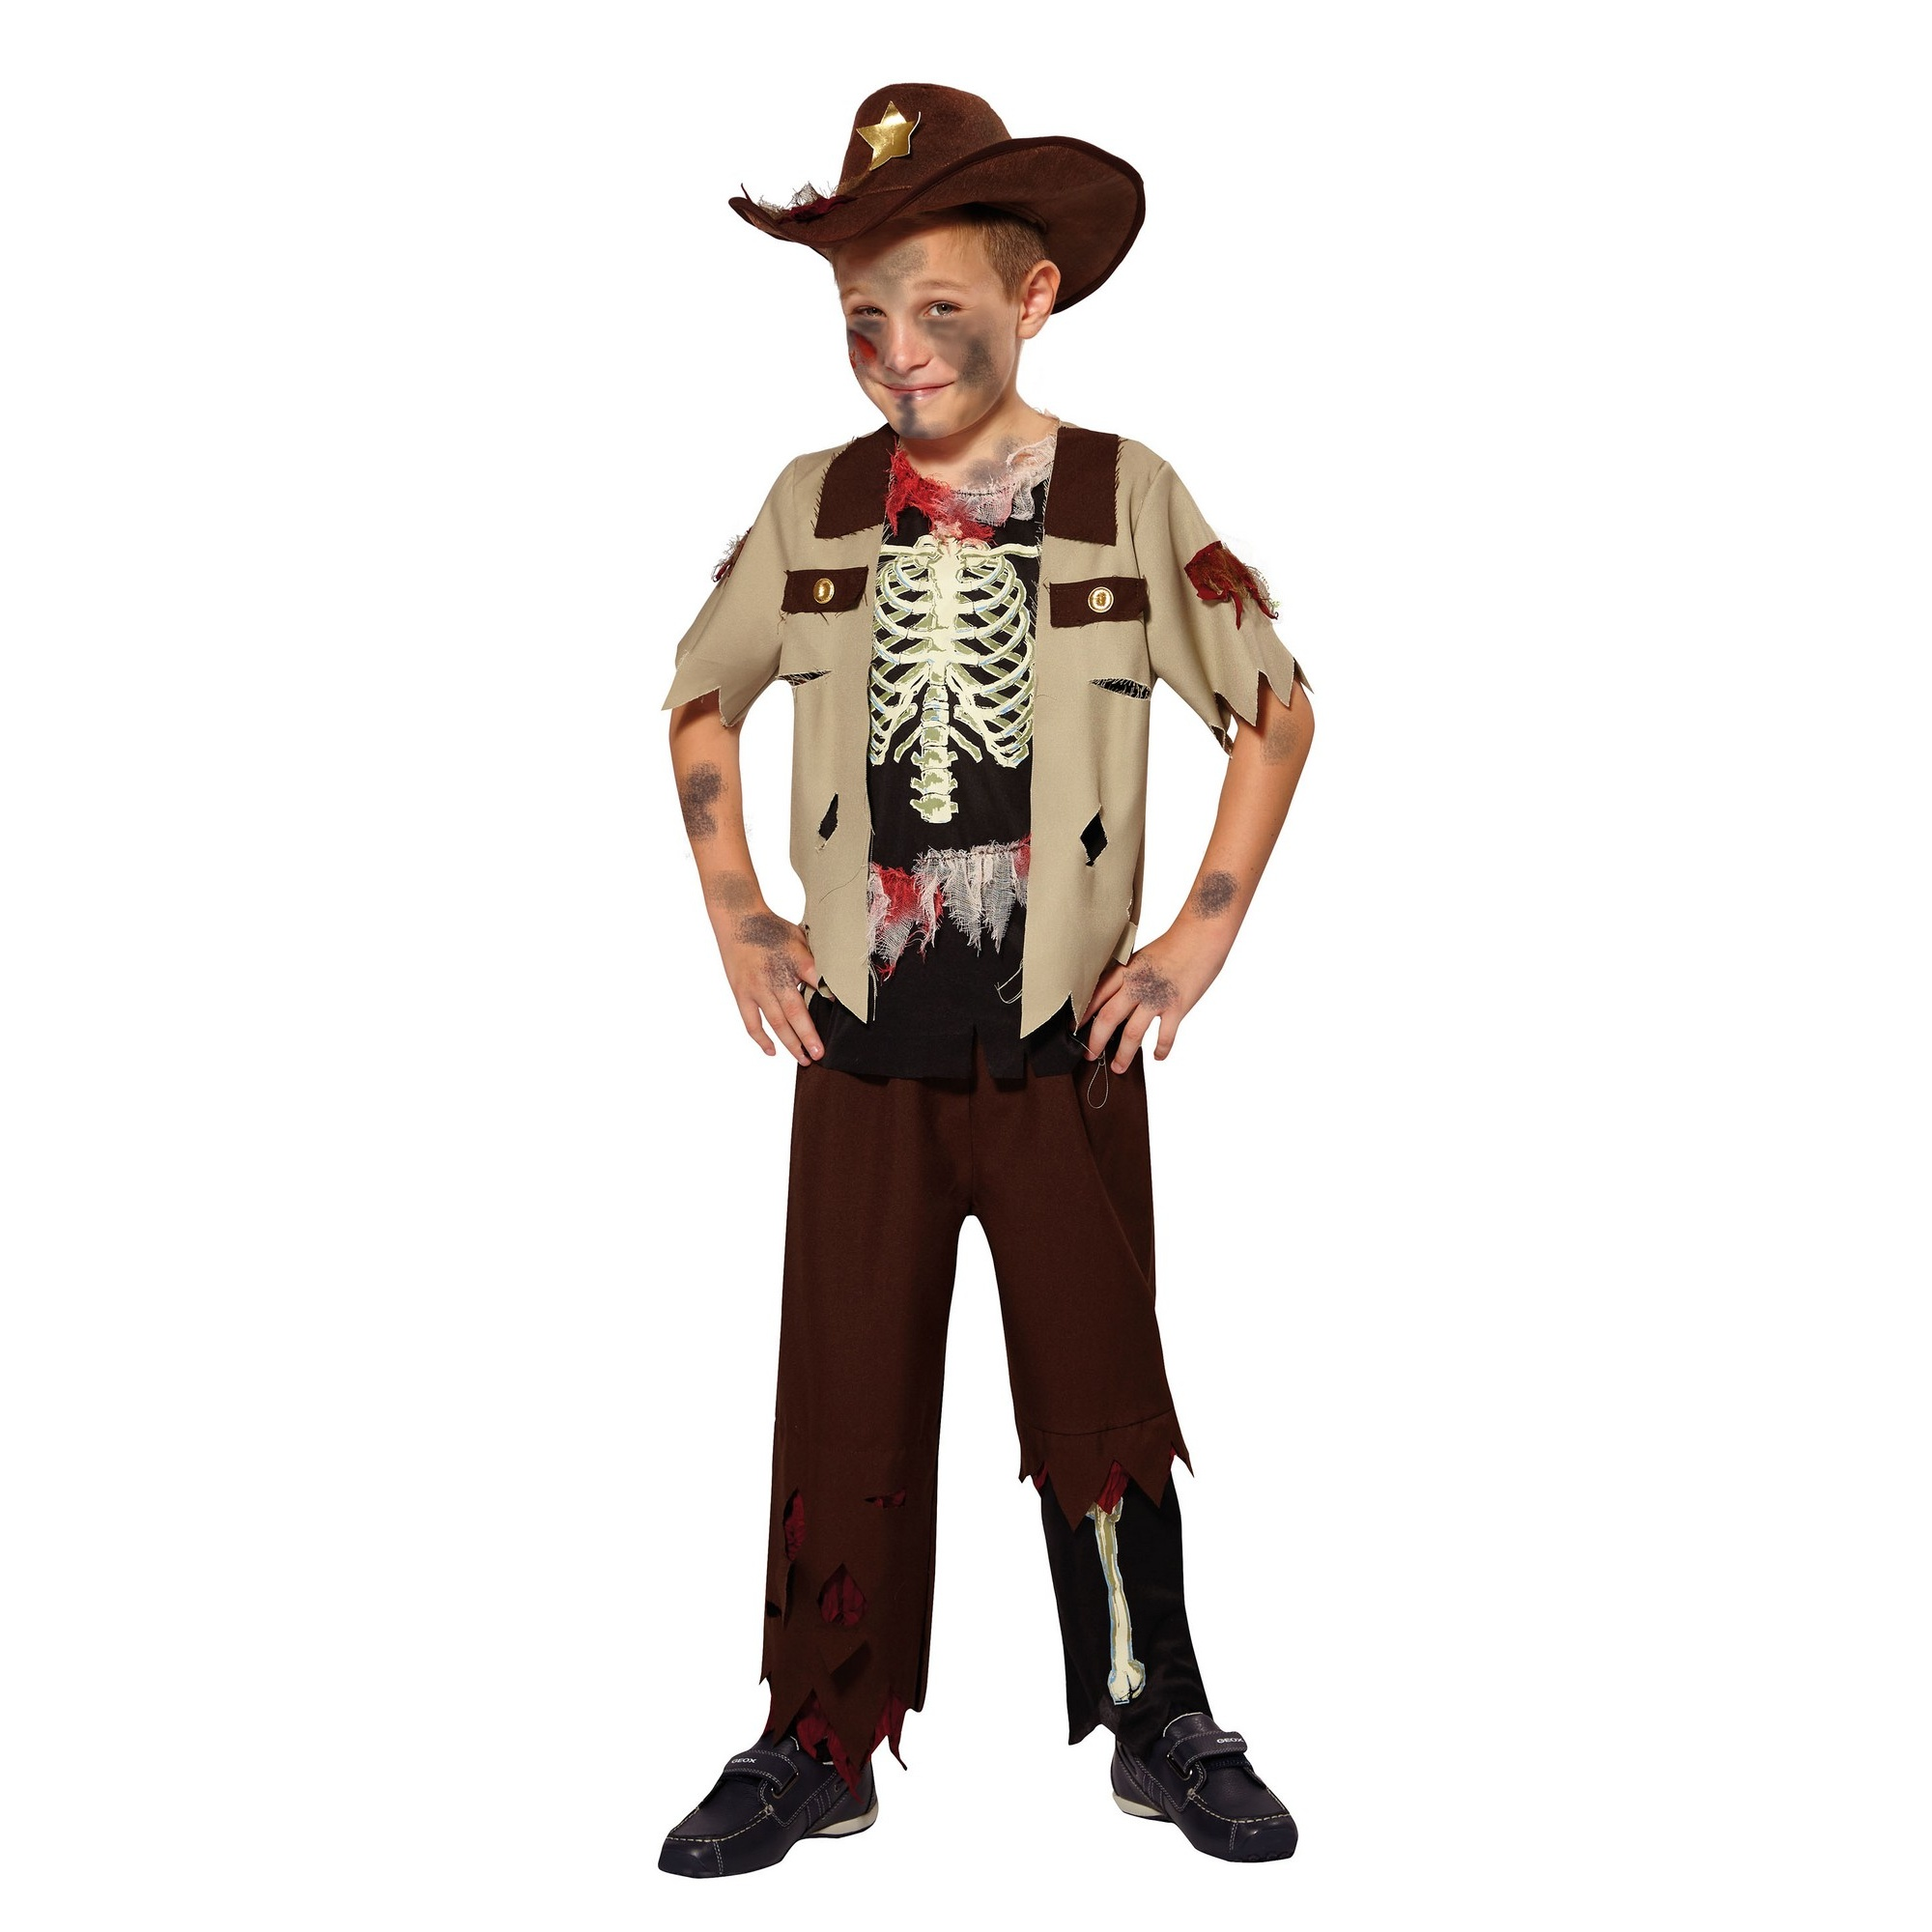 Bristol Novelty Childrens/Kids Skeleton Sheriff Costume (M) (Brown/Black)